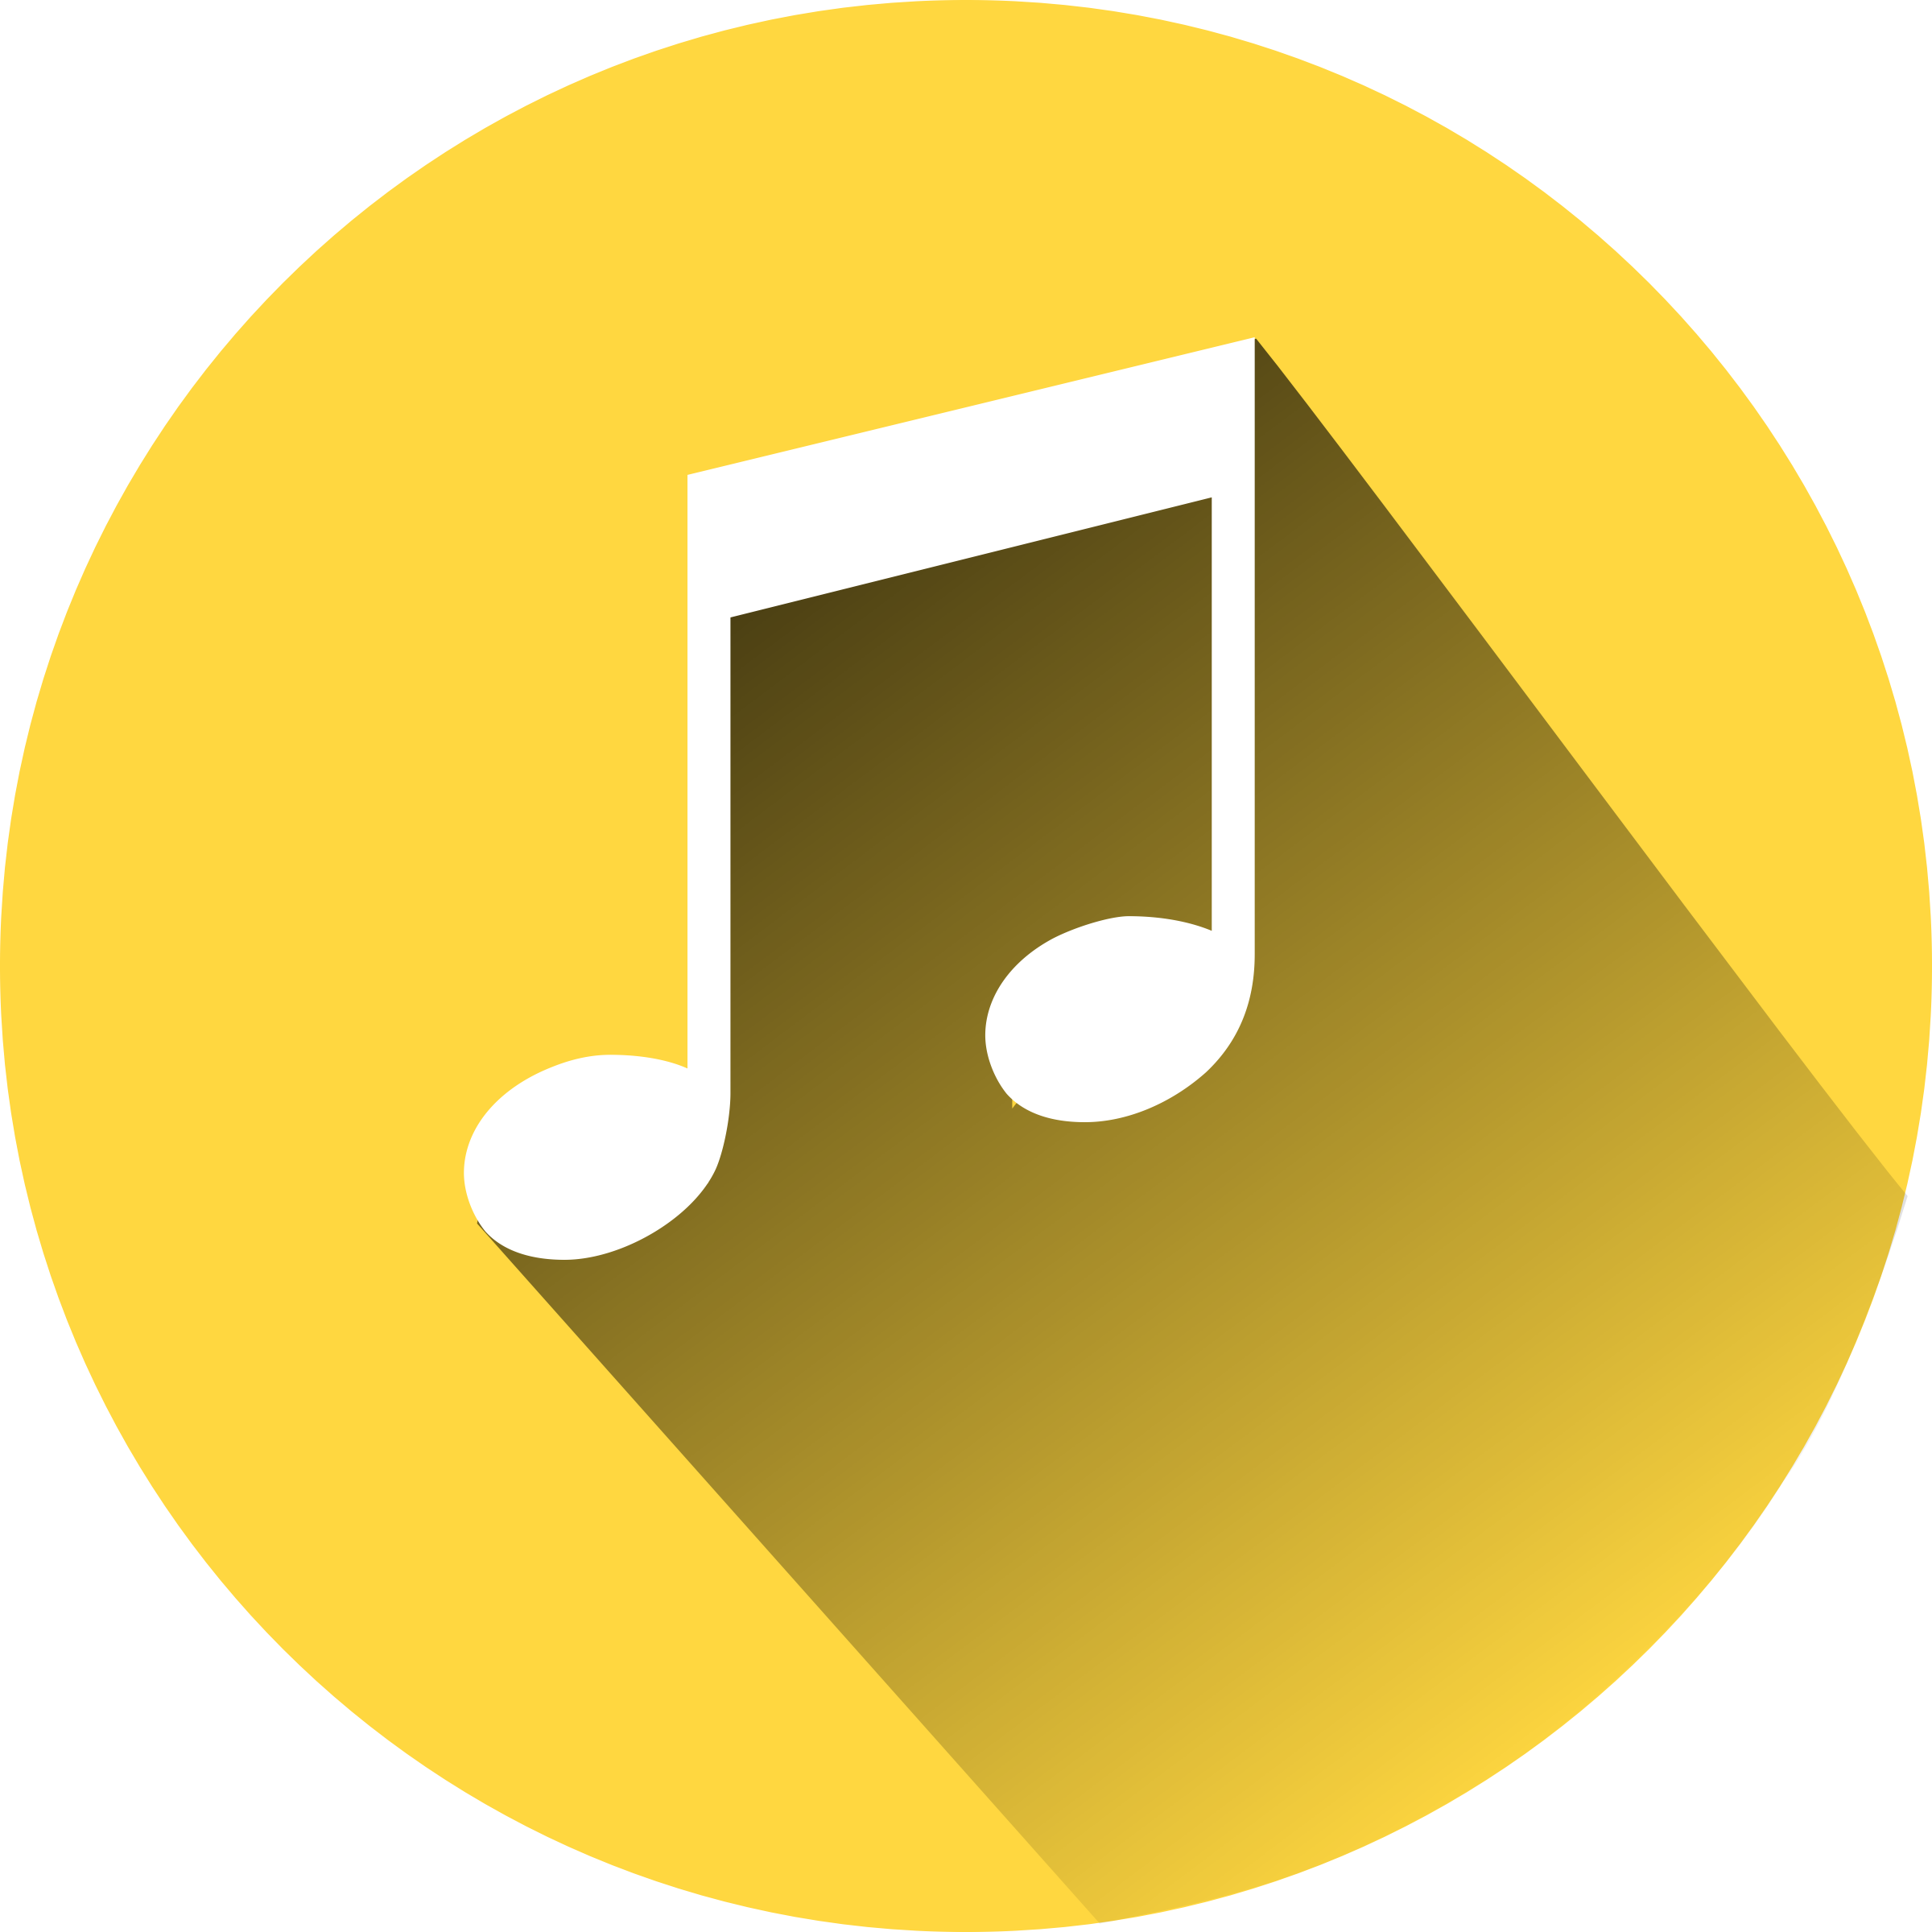 Music Note on yellow cyrcle by Benjo2000